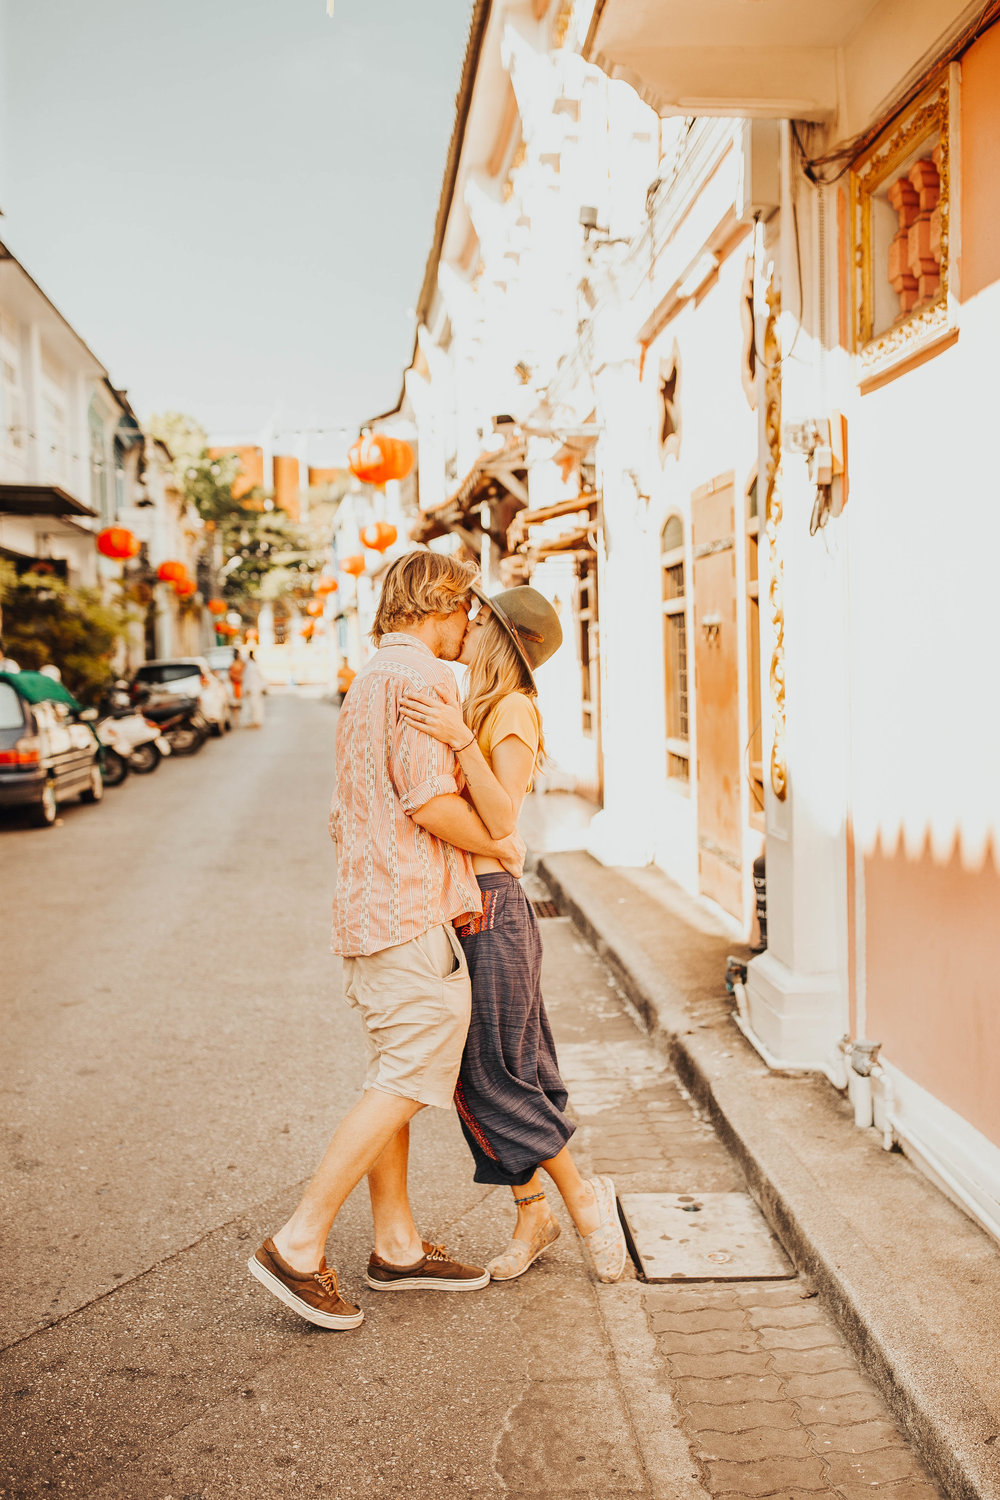 Julie and Will Old Town Phuket Couples Session 14.jpg